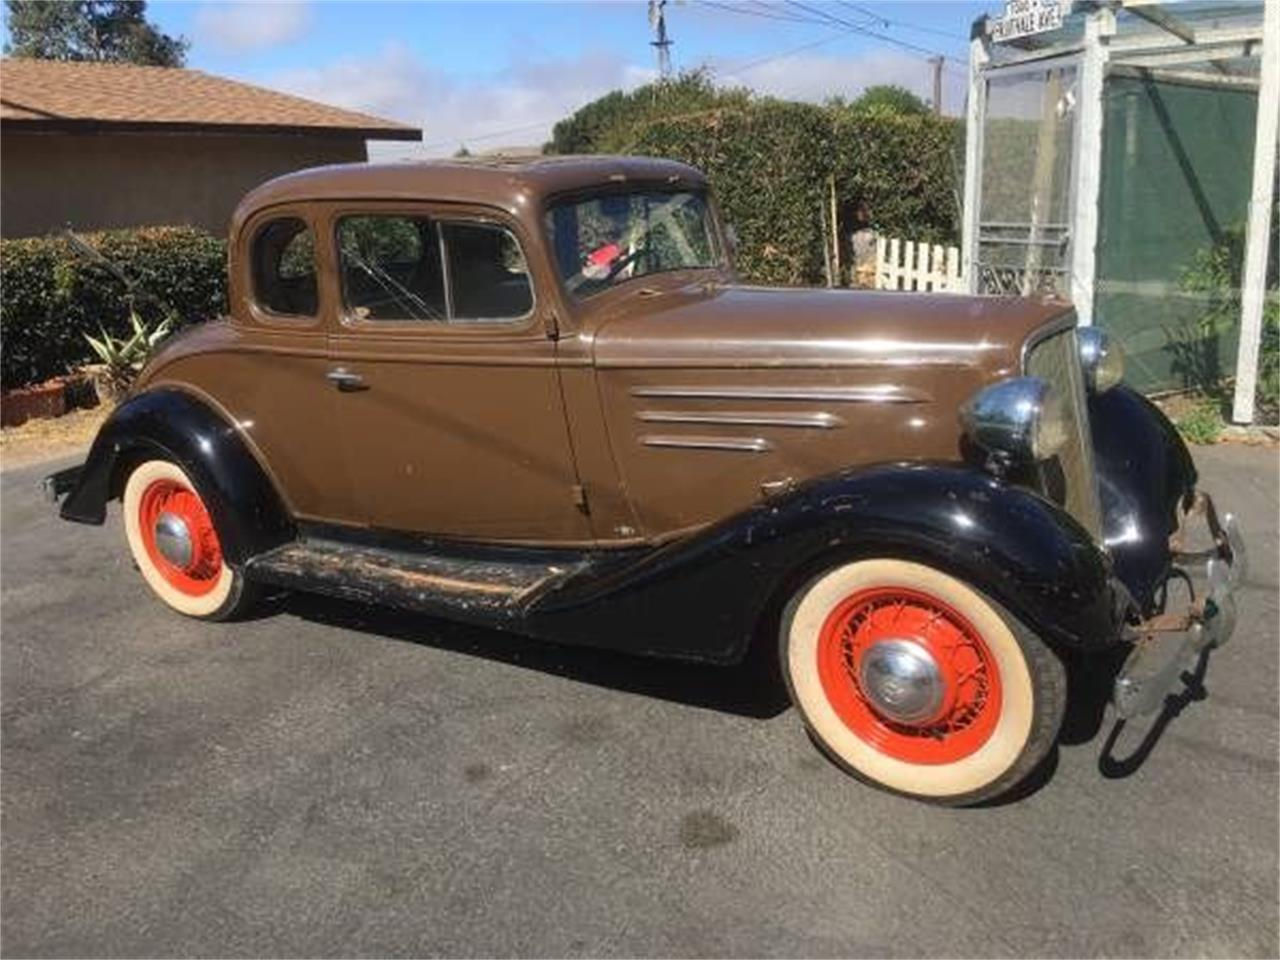 For Sale: 1934 Chevrolet Coupe in Cadillac, Michigan